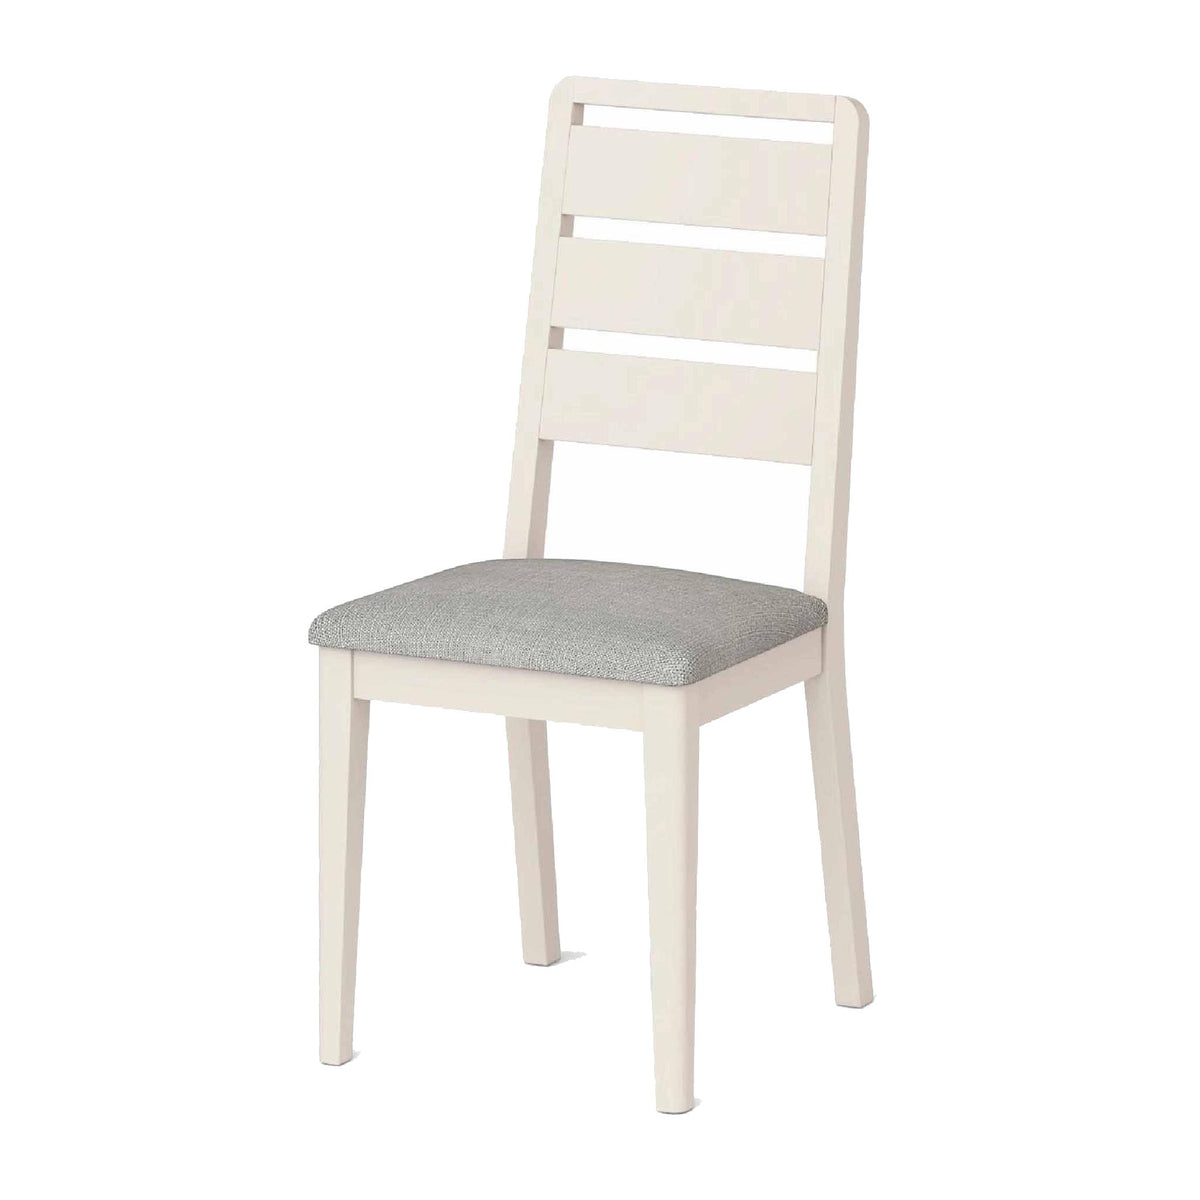 Windsor Cream Dining Chair by Roseland Furniture